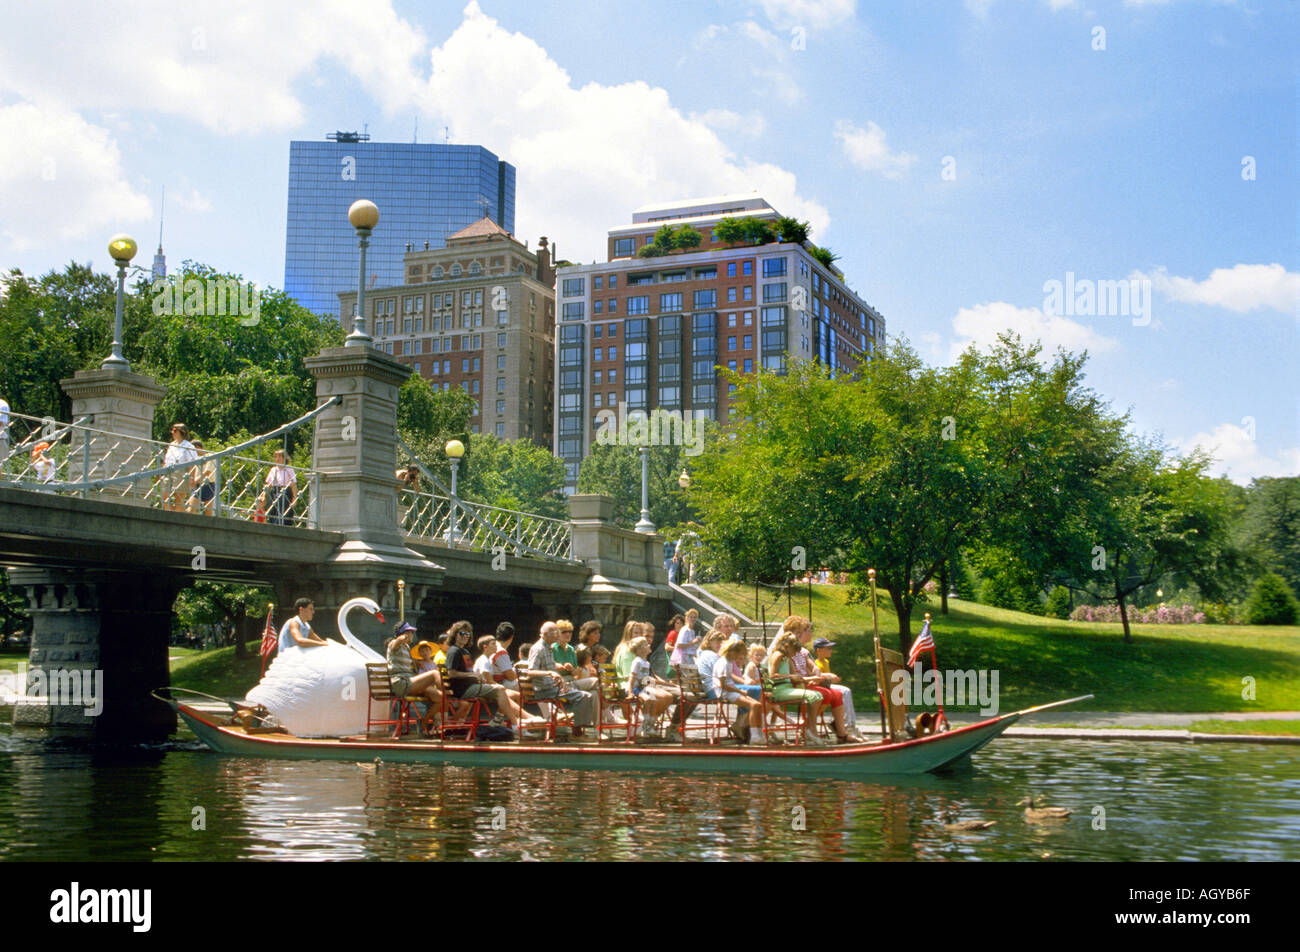 Swan Boats parte integrante del paisaje del centro de Boston, Massachusetts Imagen De Stock